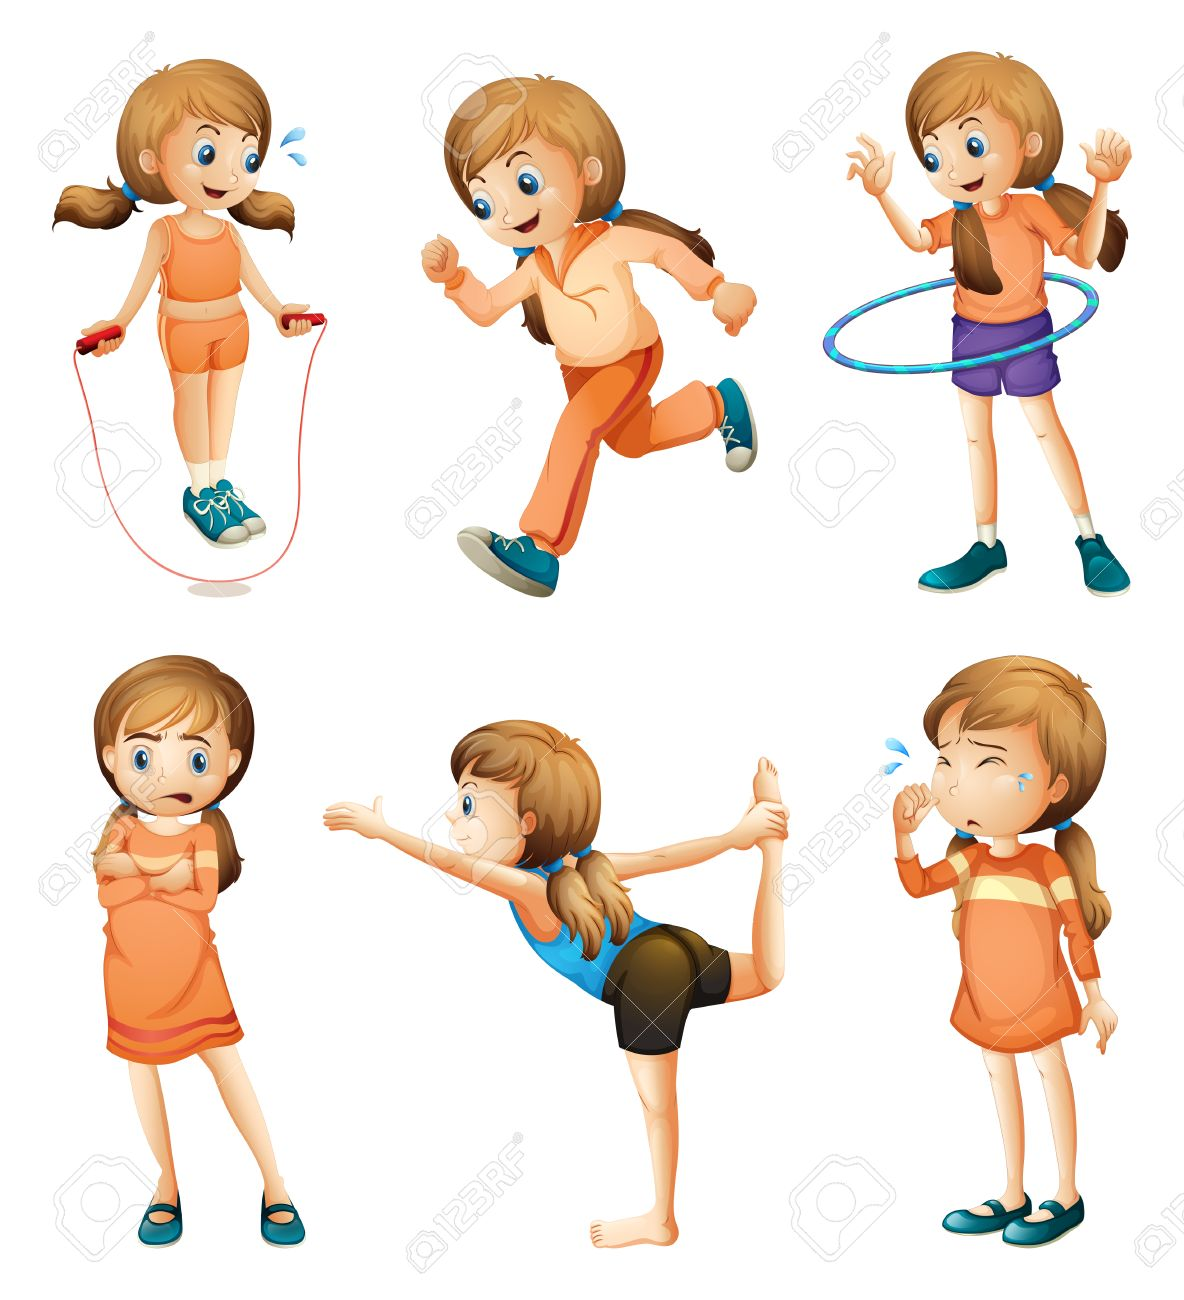 2,600 Skipping Rope Stock Illustrations, Cliparts And Royalty Free ...